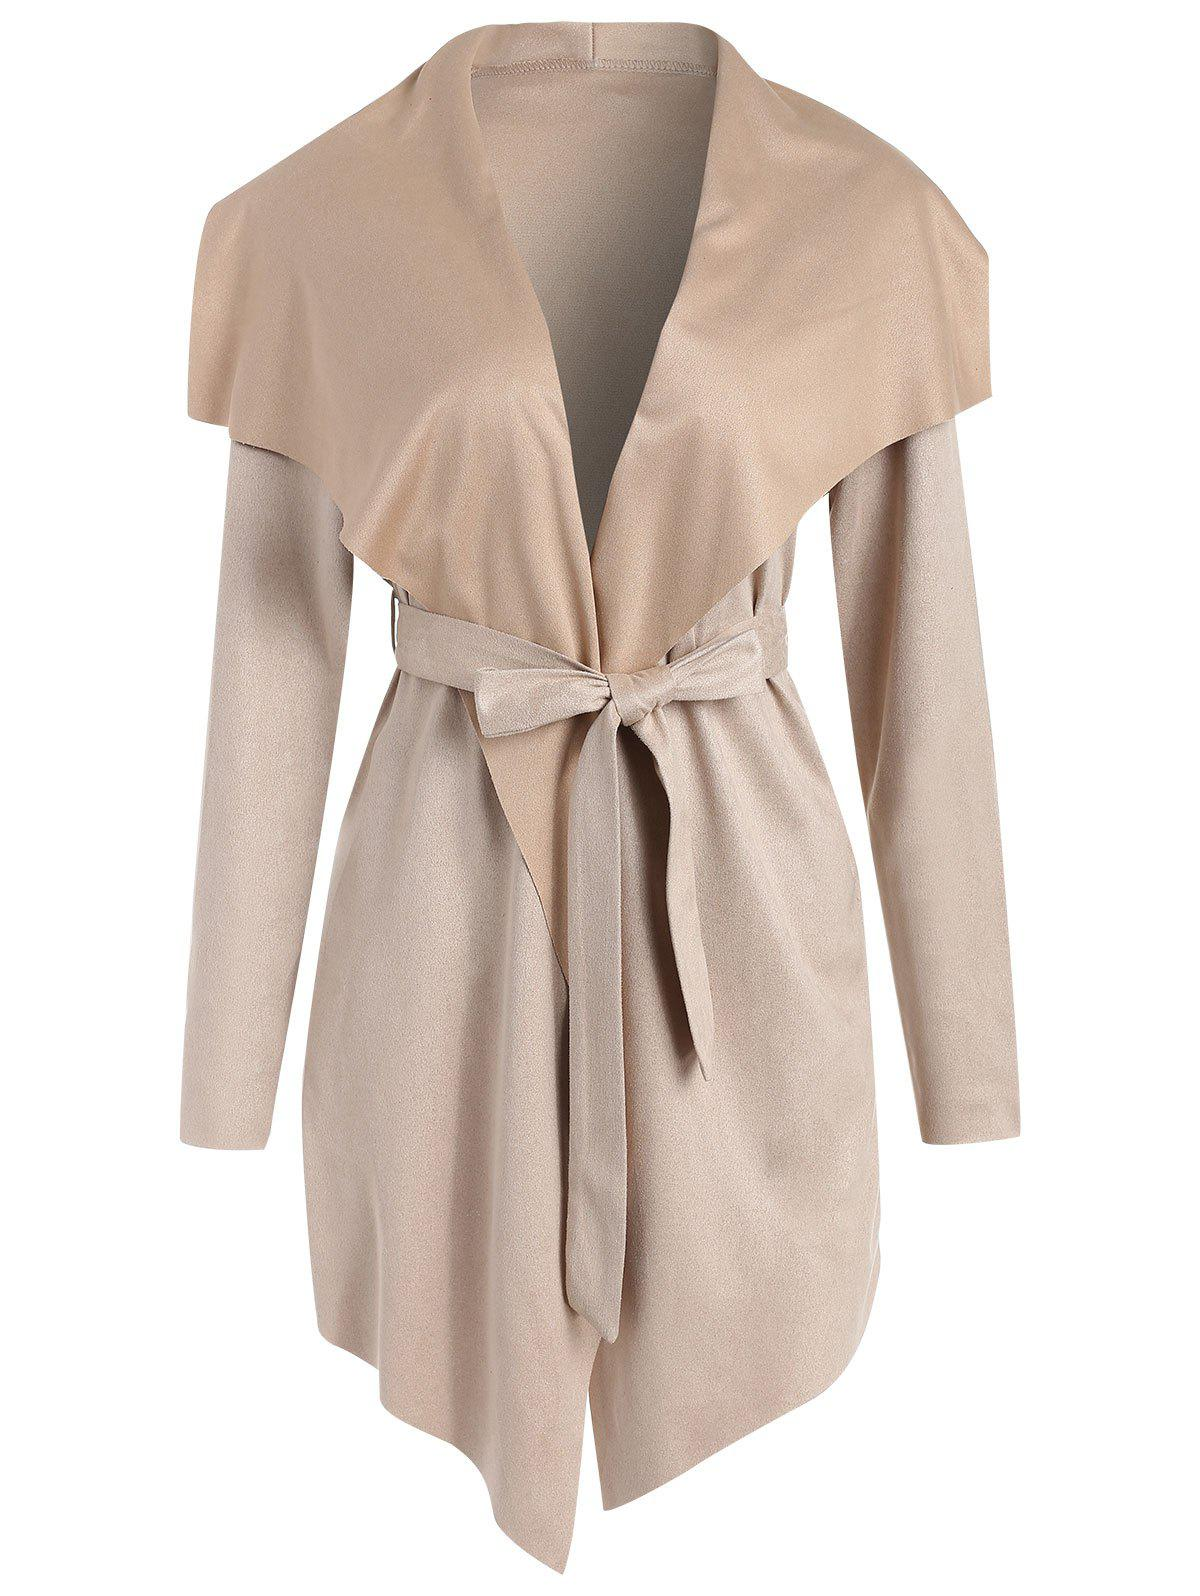 Shops Faux Suede Asymmetrical Coat with Belt